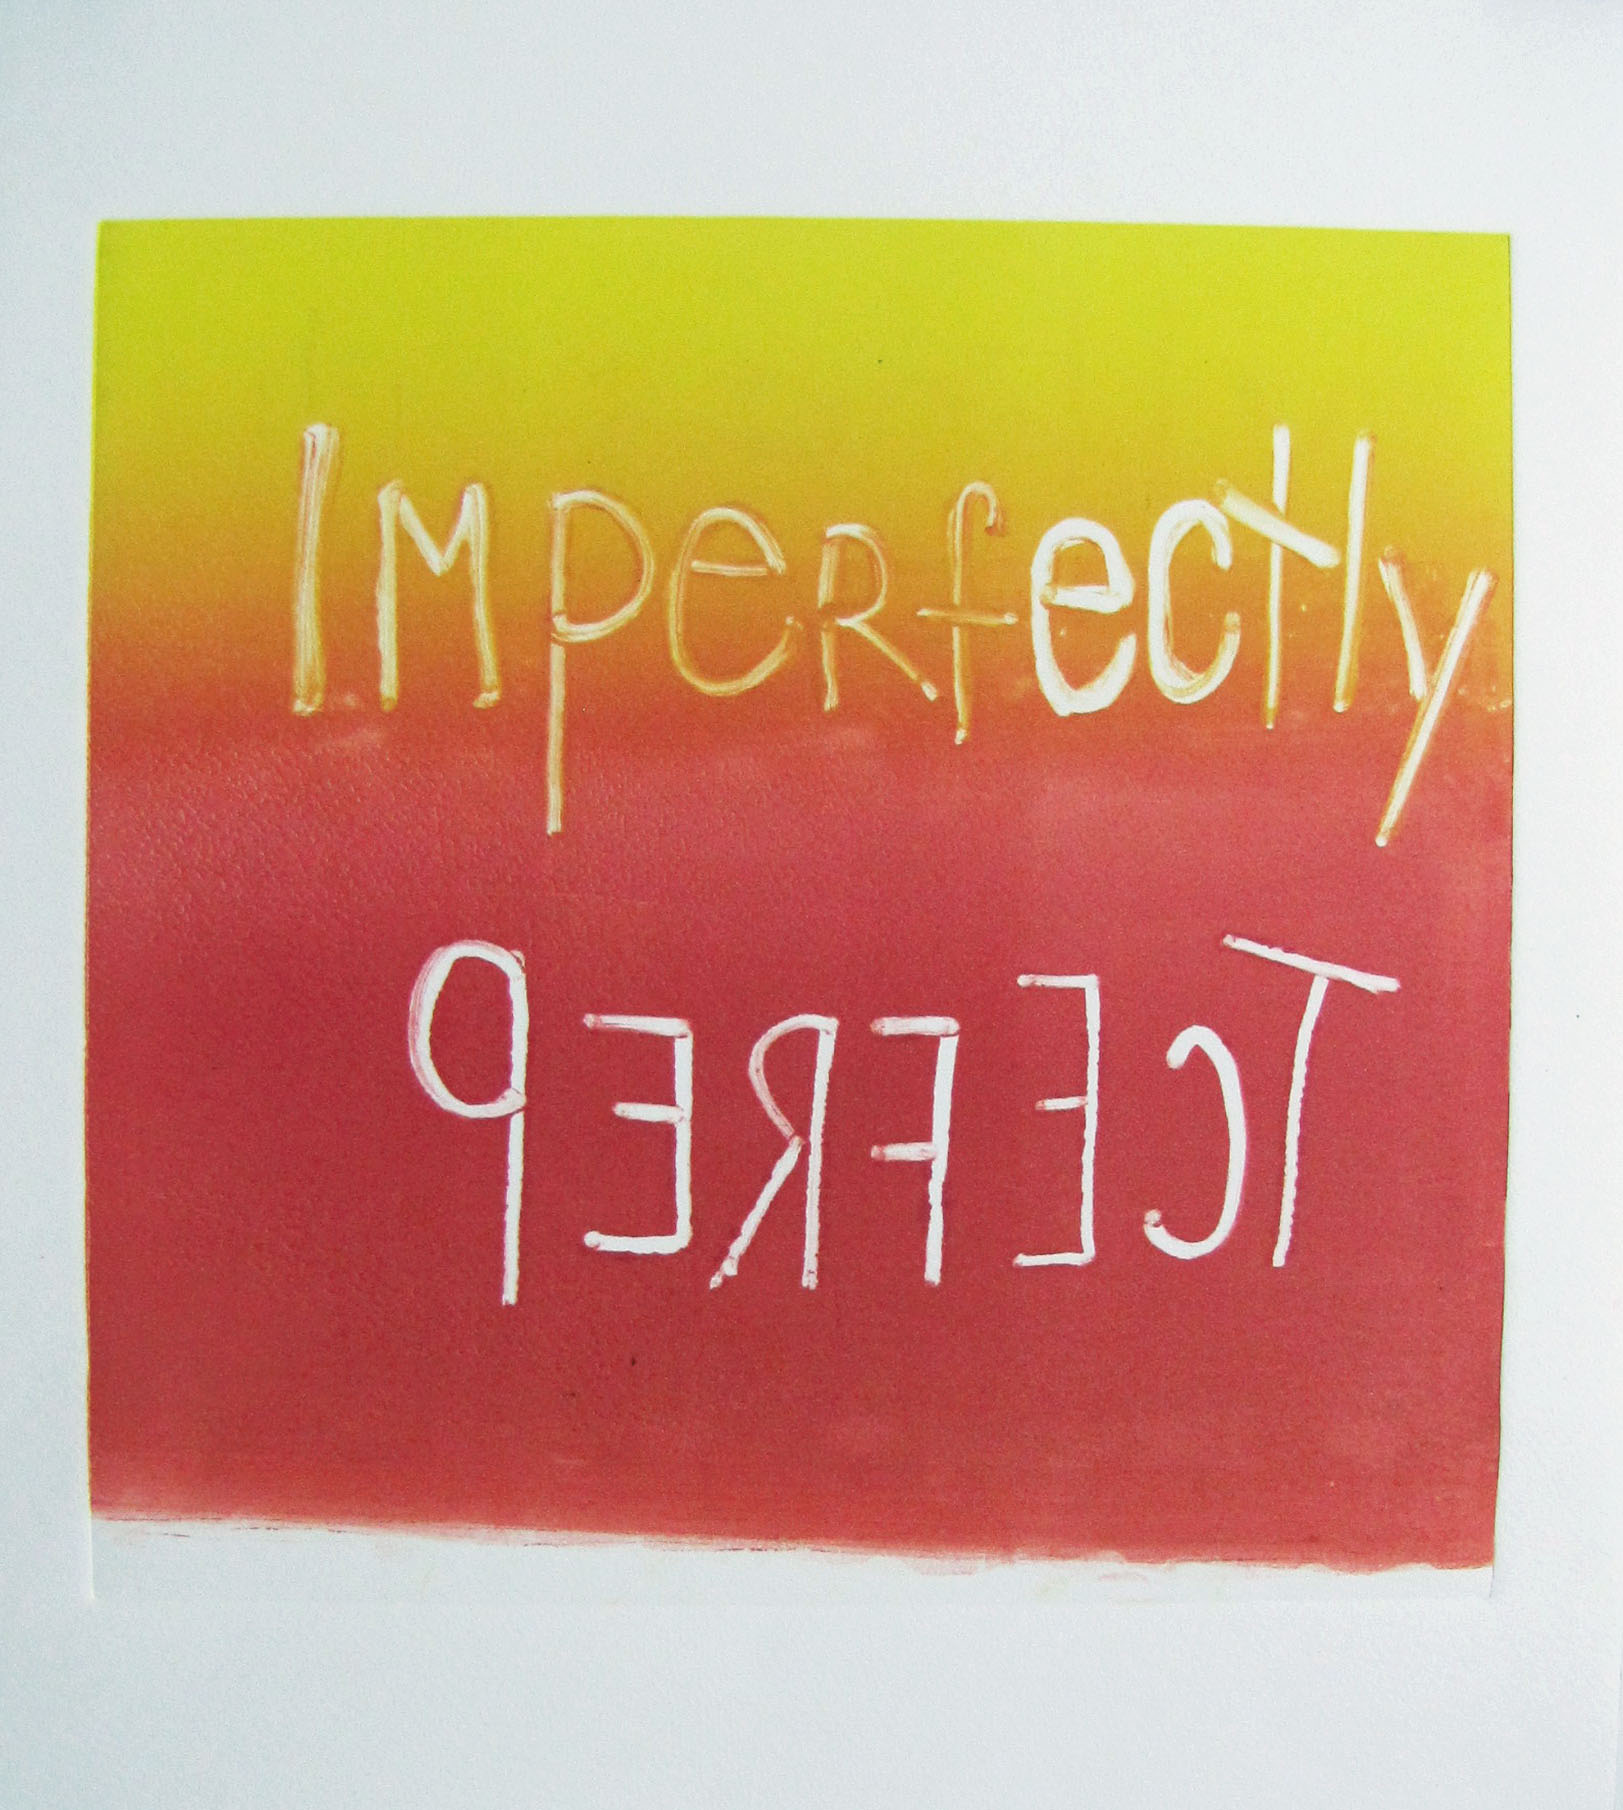 Imperfectly Perfect - Elizabeth Newton.jpg